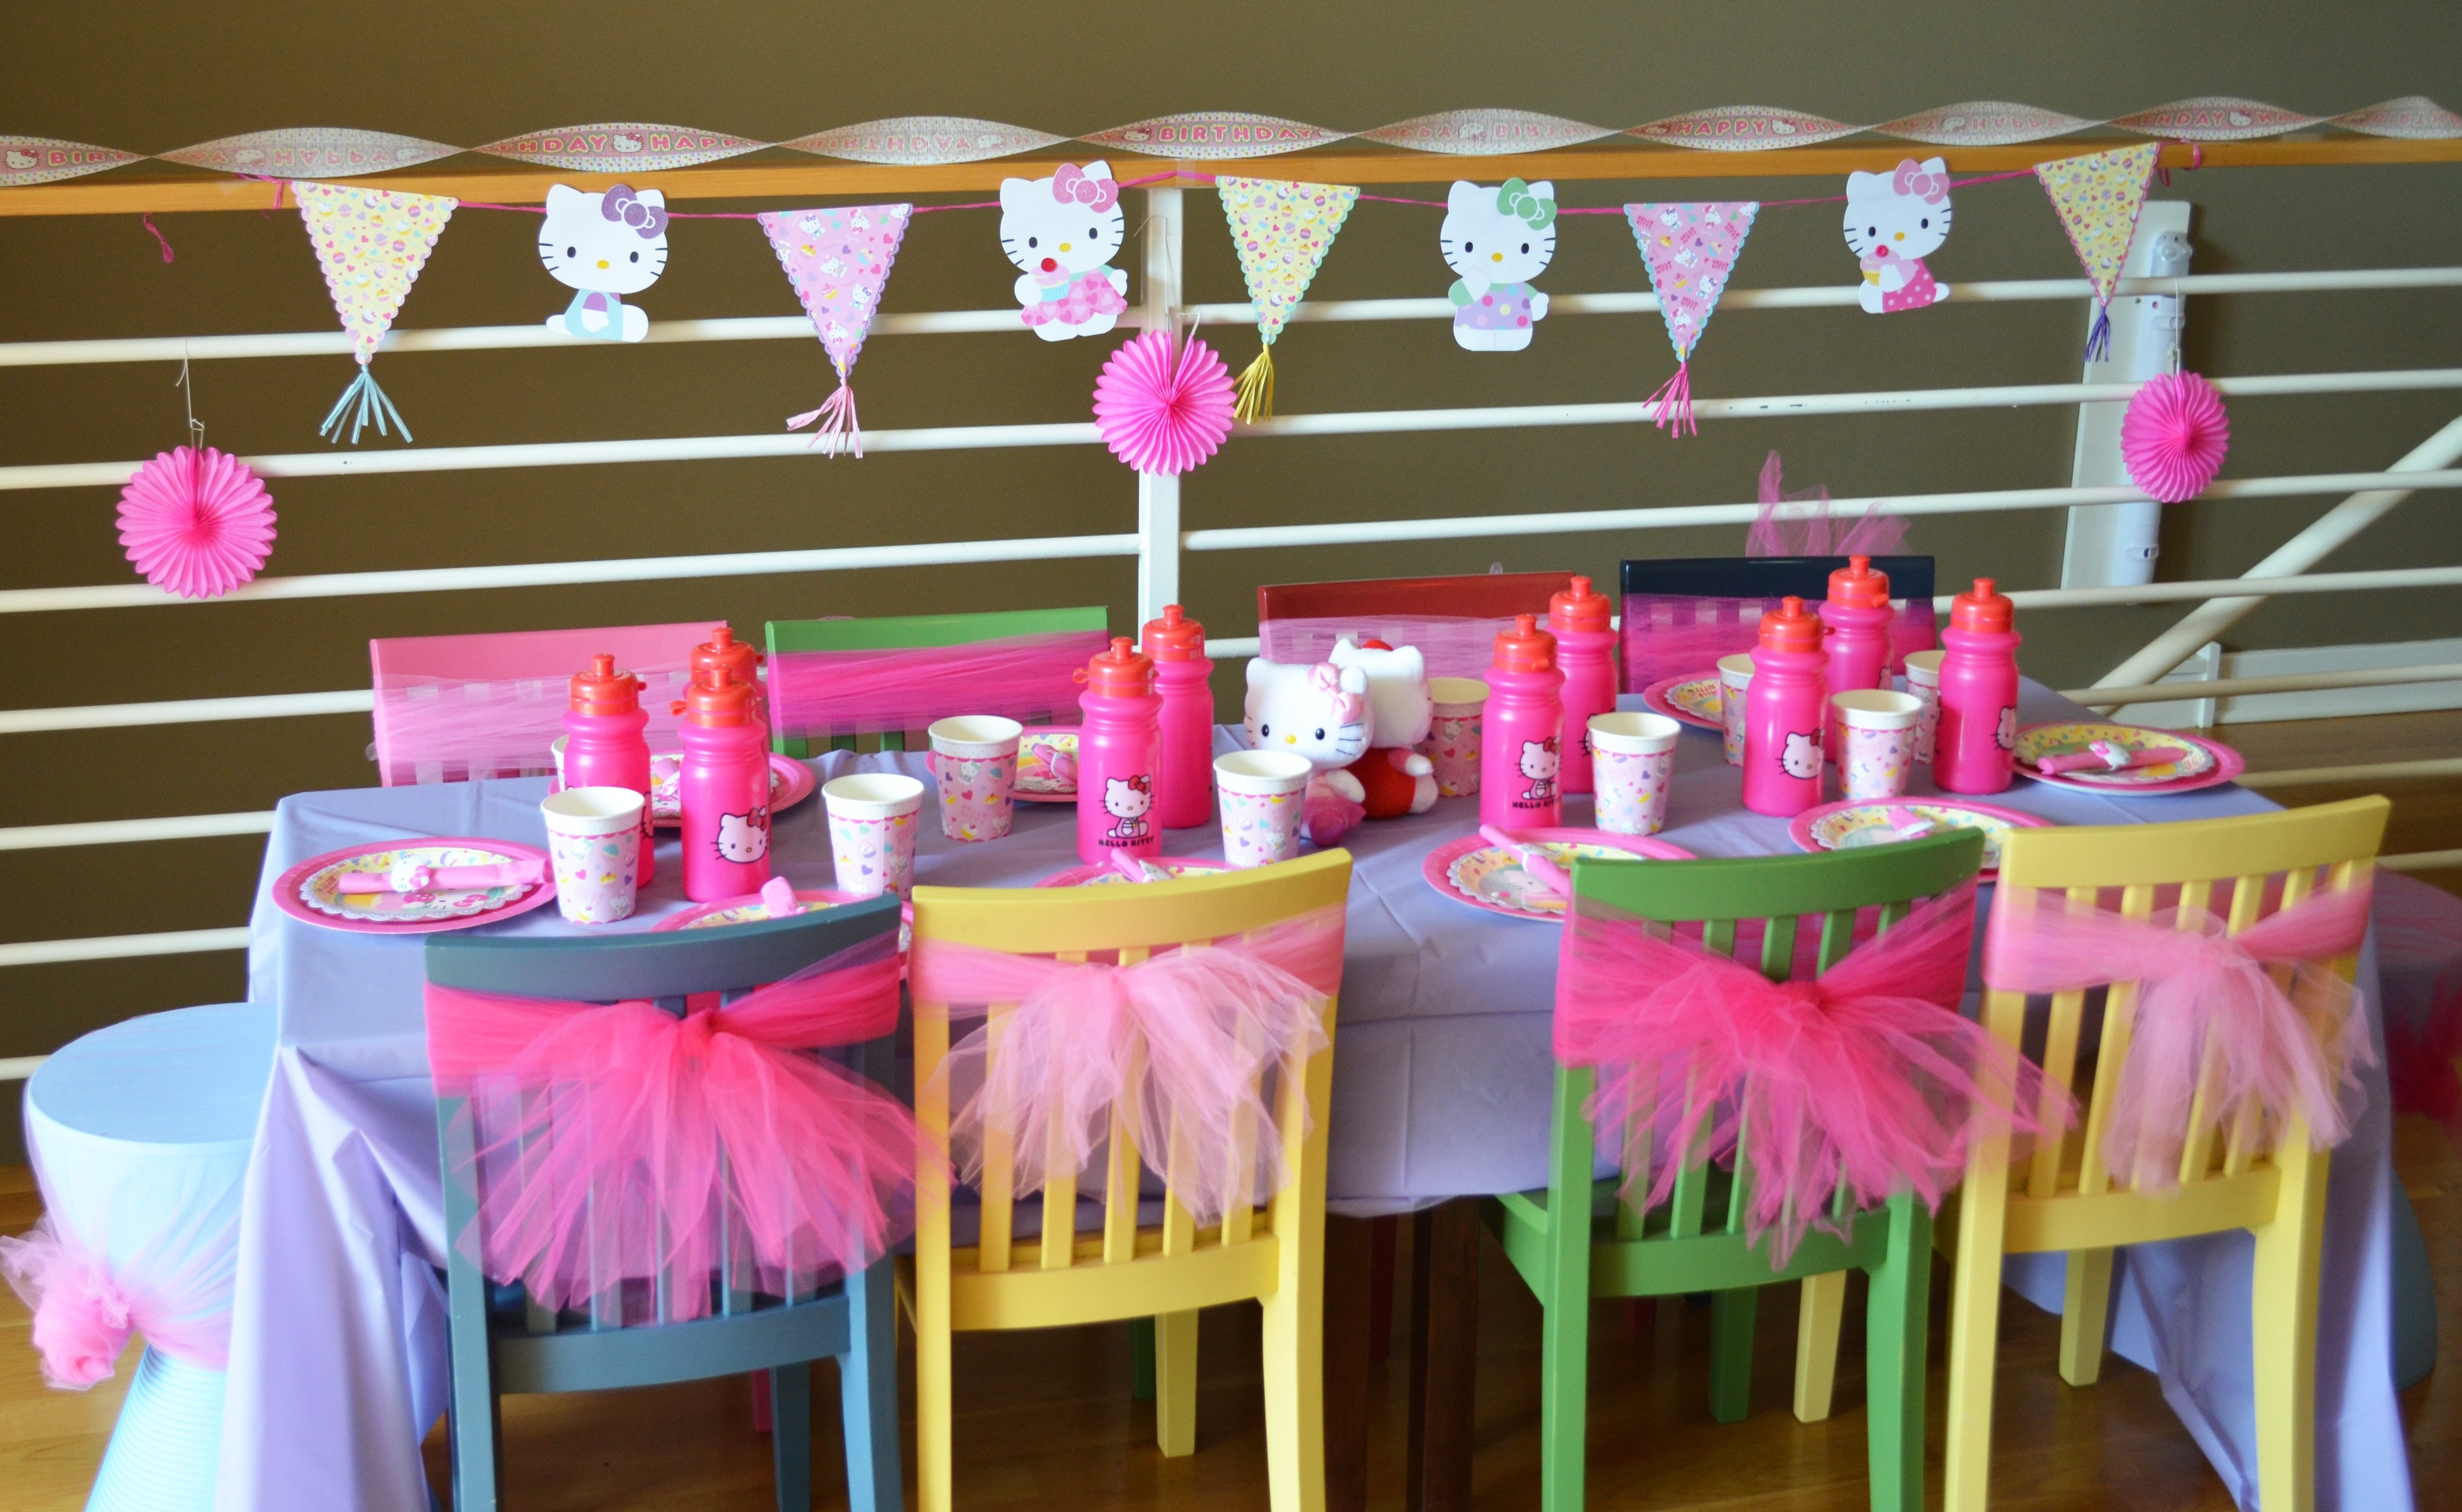 10 Great Birthday Party Ideas For 5 Year Old Girl a how to hello kitty birthday party hello kitty birthday kitty 11 2021